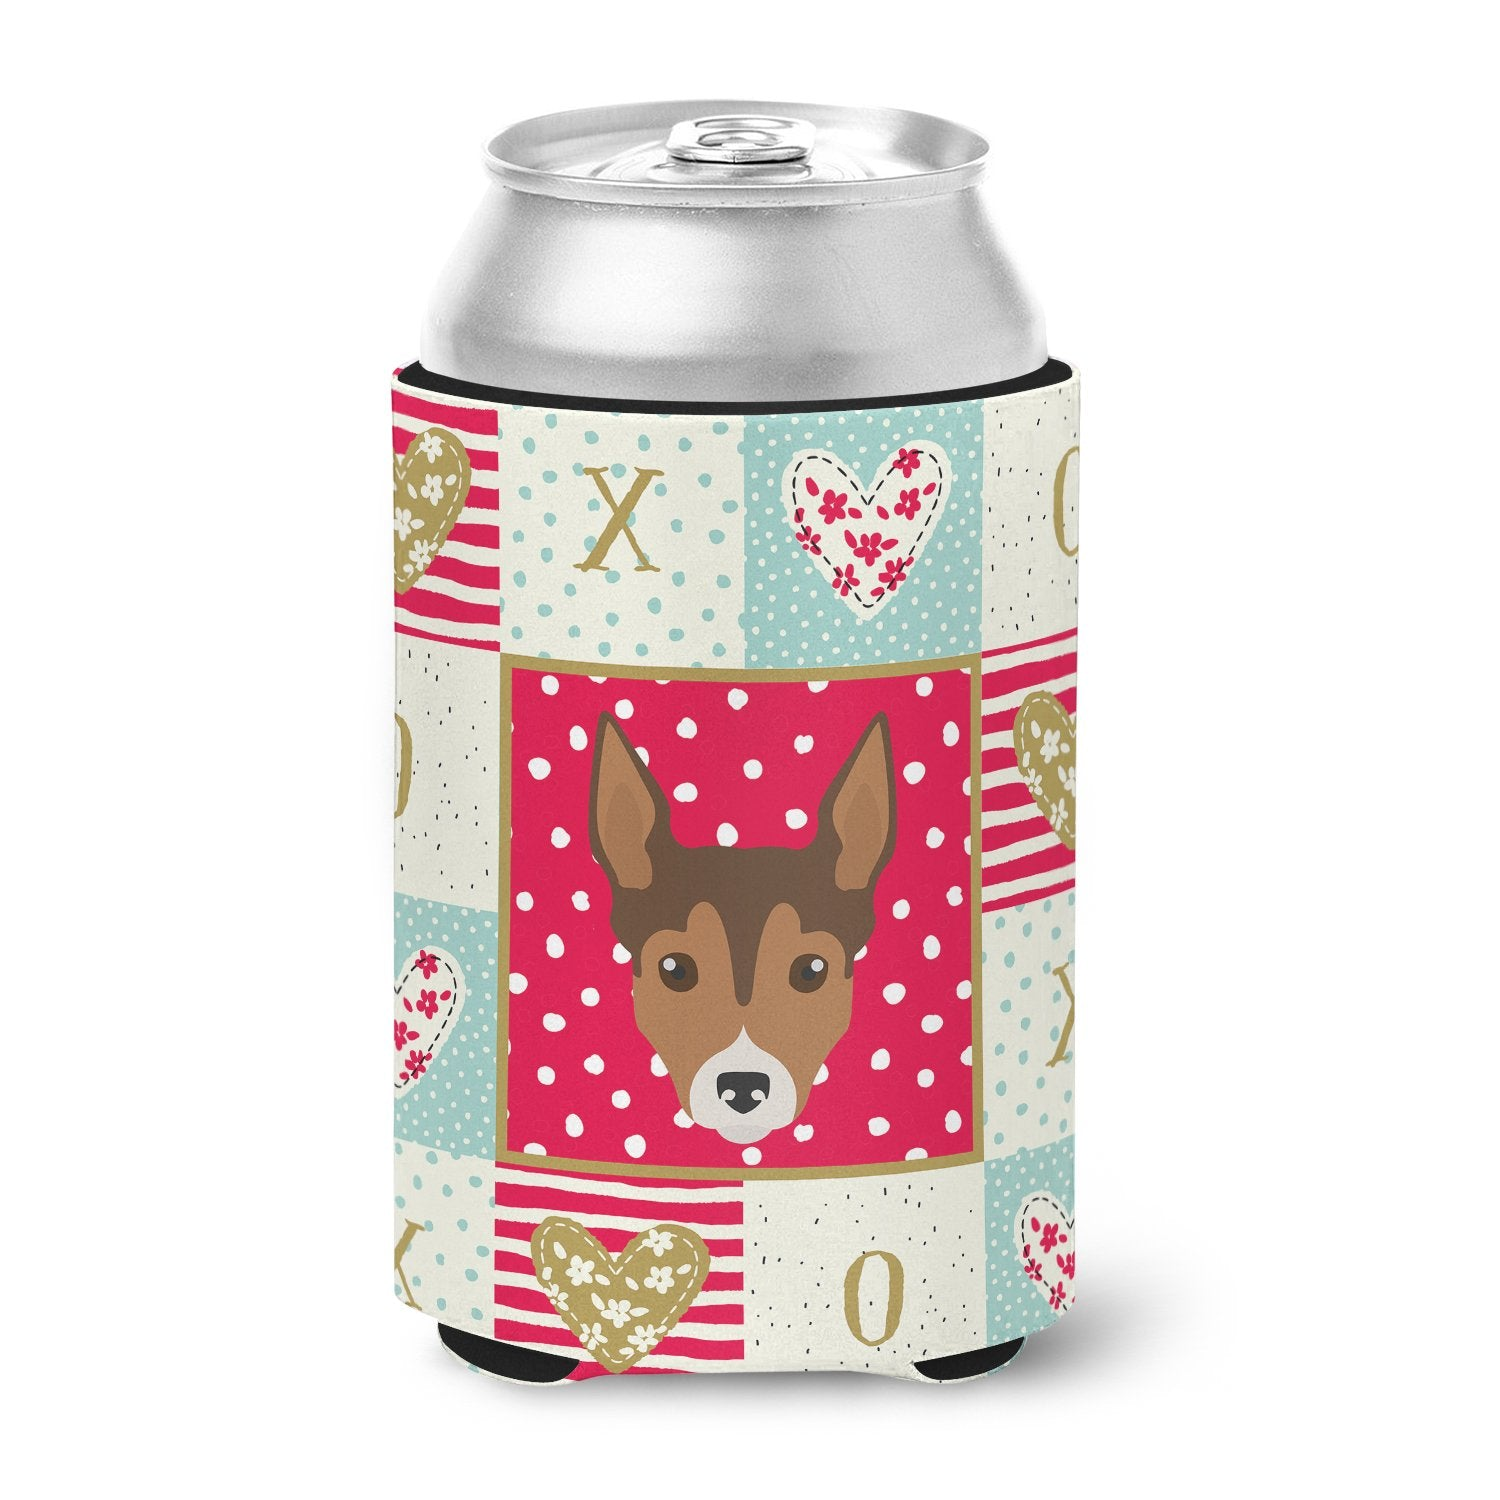 Tenterfield Terrier Love Can or Bottle Hugger CK5239CC by Caroline's Treasures